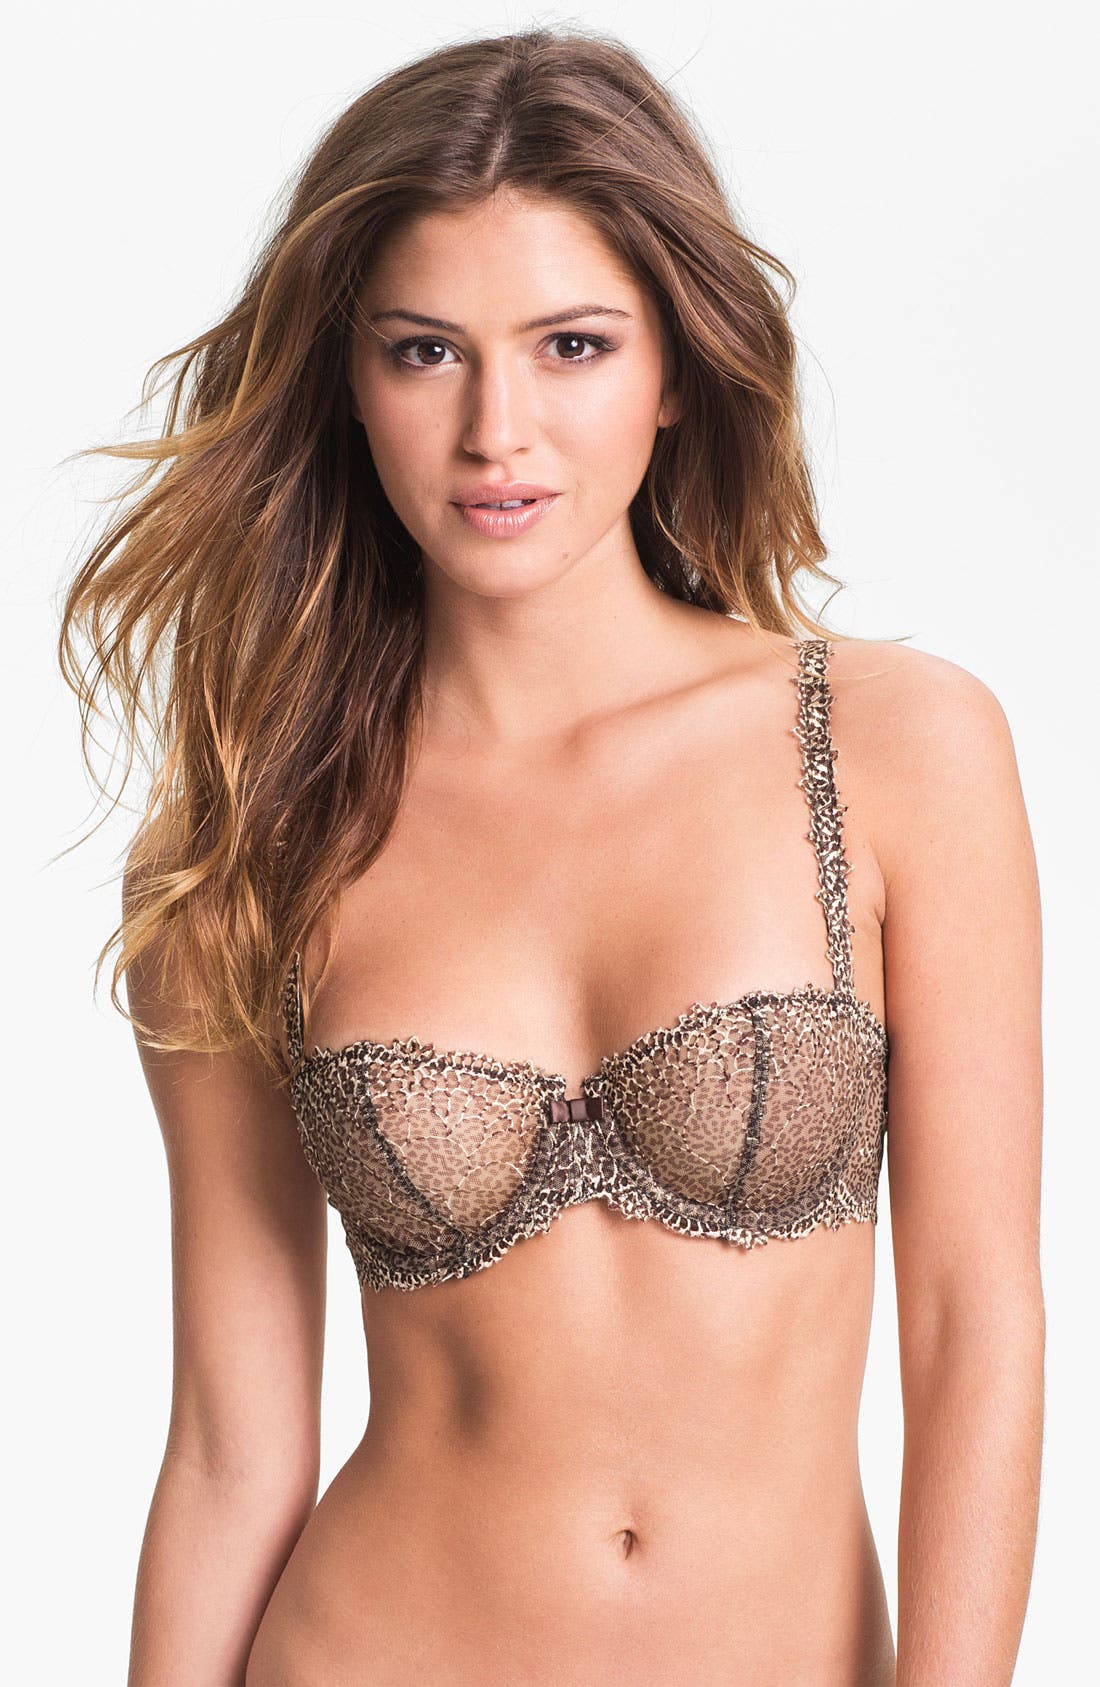 Alternate Image 1 Selected - Chantelle Intimates 'Icone' Underwire Demi Bra